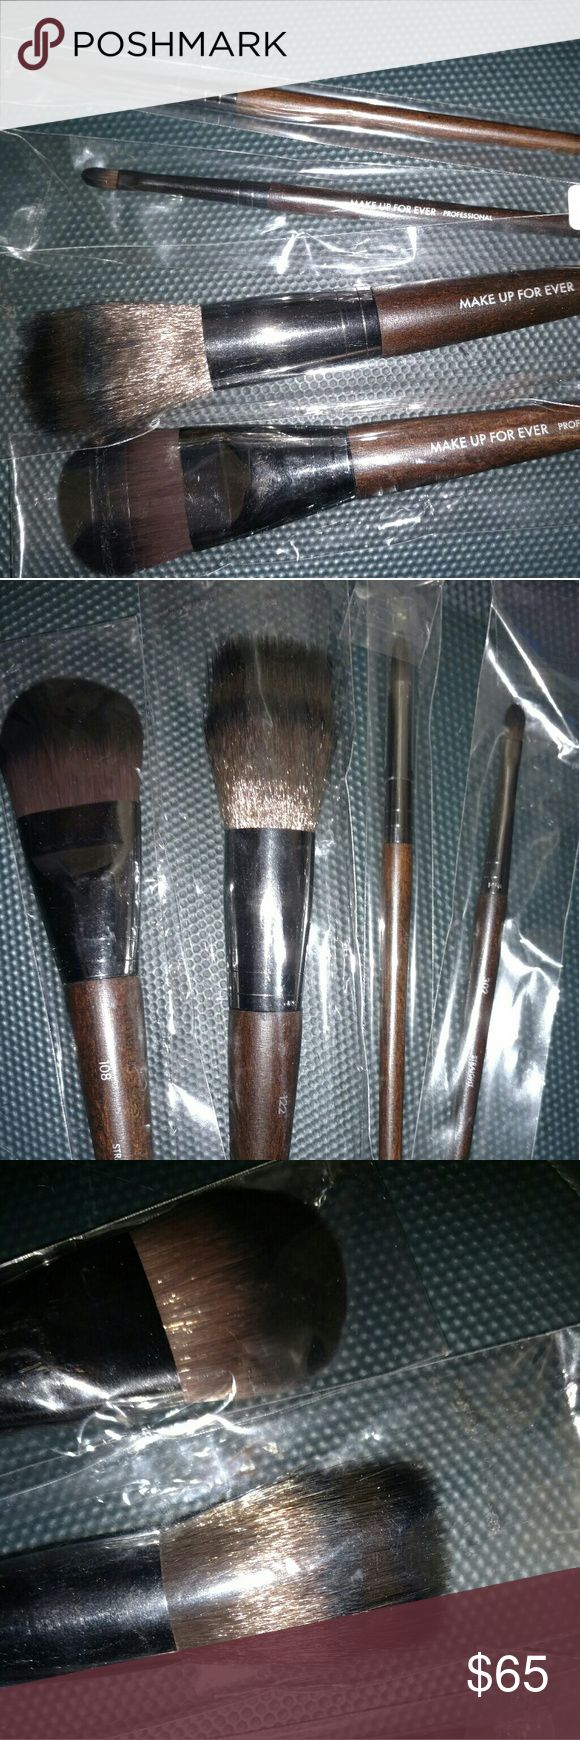 4 Make Up For Ever Brushes Brand new/ never used make up for ever makeup brushes. Four sizes: 122 Straight & Wavy, 108 Straight, 302 Straight, 400 Straight. No Trading. Makeup Forever Makeup Brushes & Tools